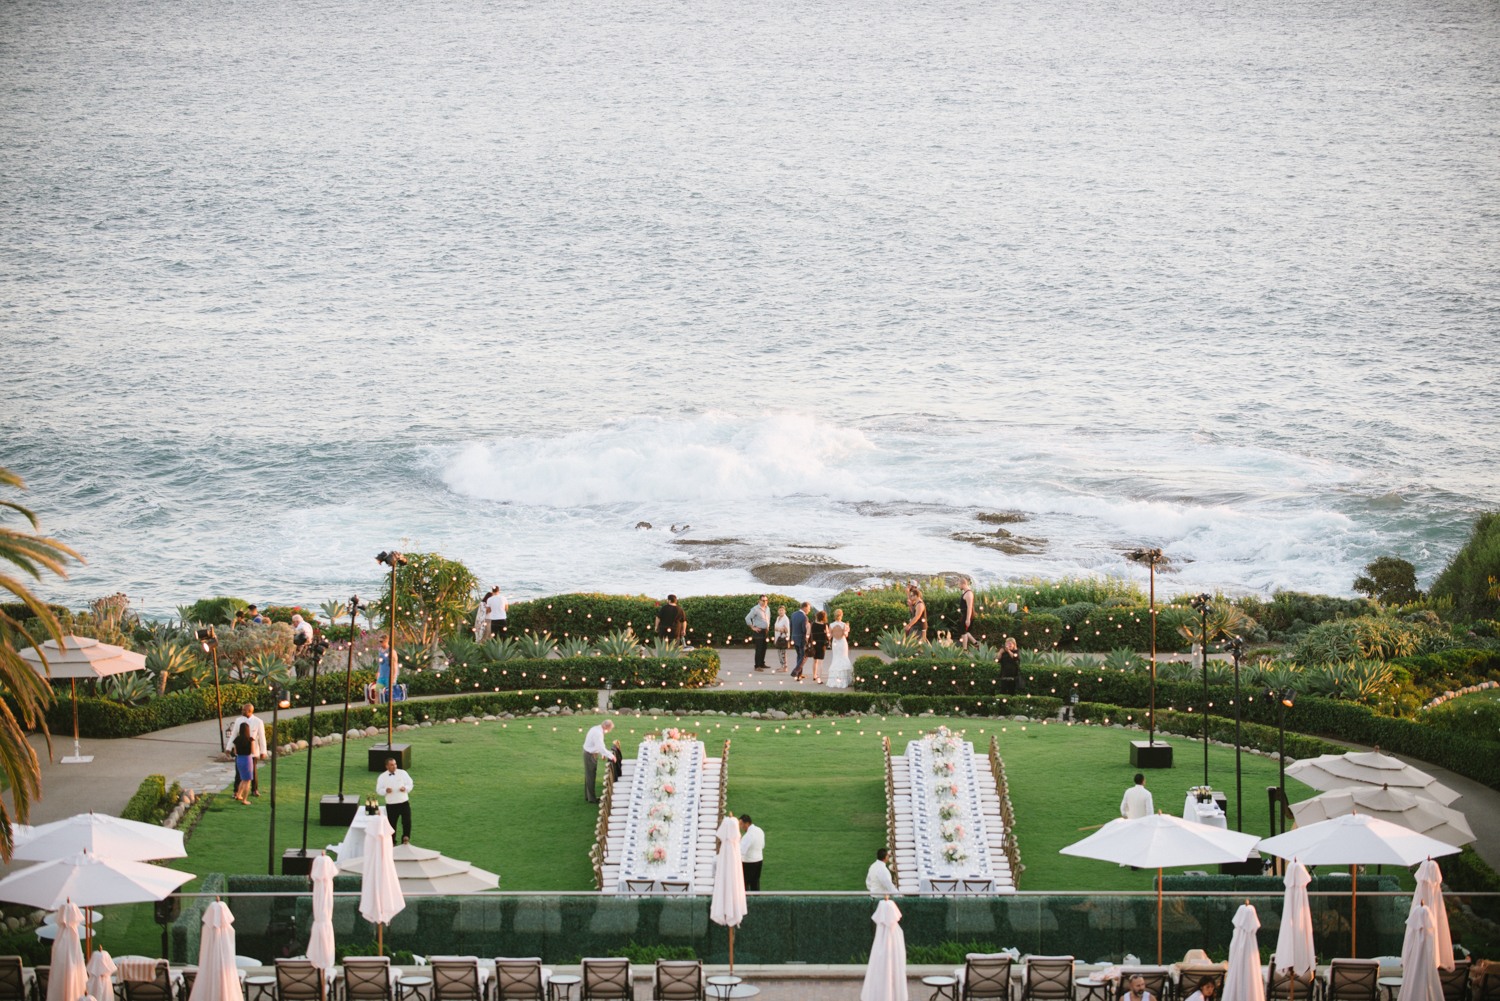 A closer shot of the ocean and luxurious green lawns of the Ritz - Margo & Tanguy mingle with guests at the reception; photo by Sylvie Gil